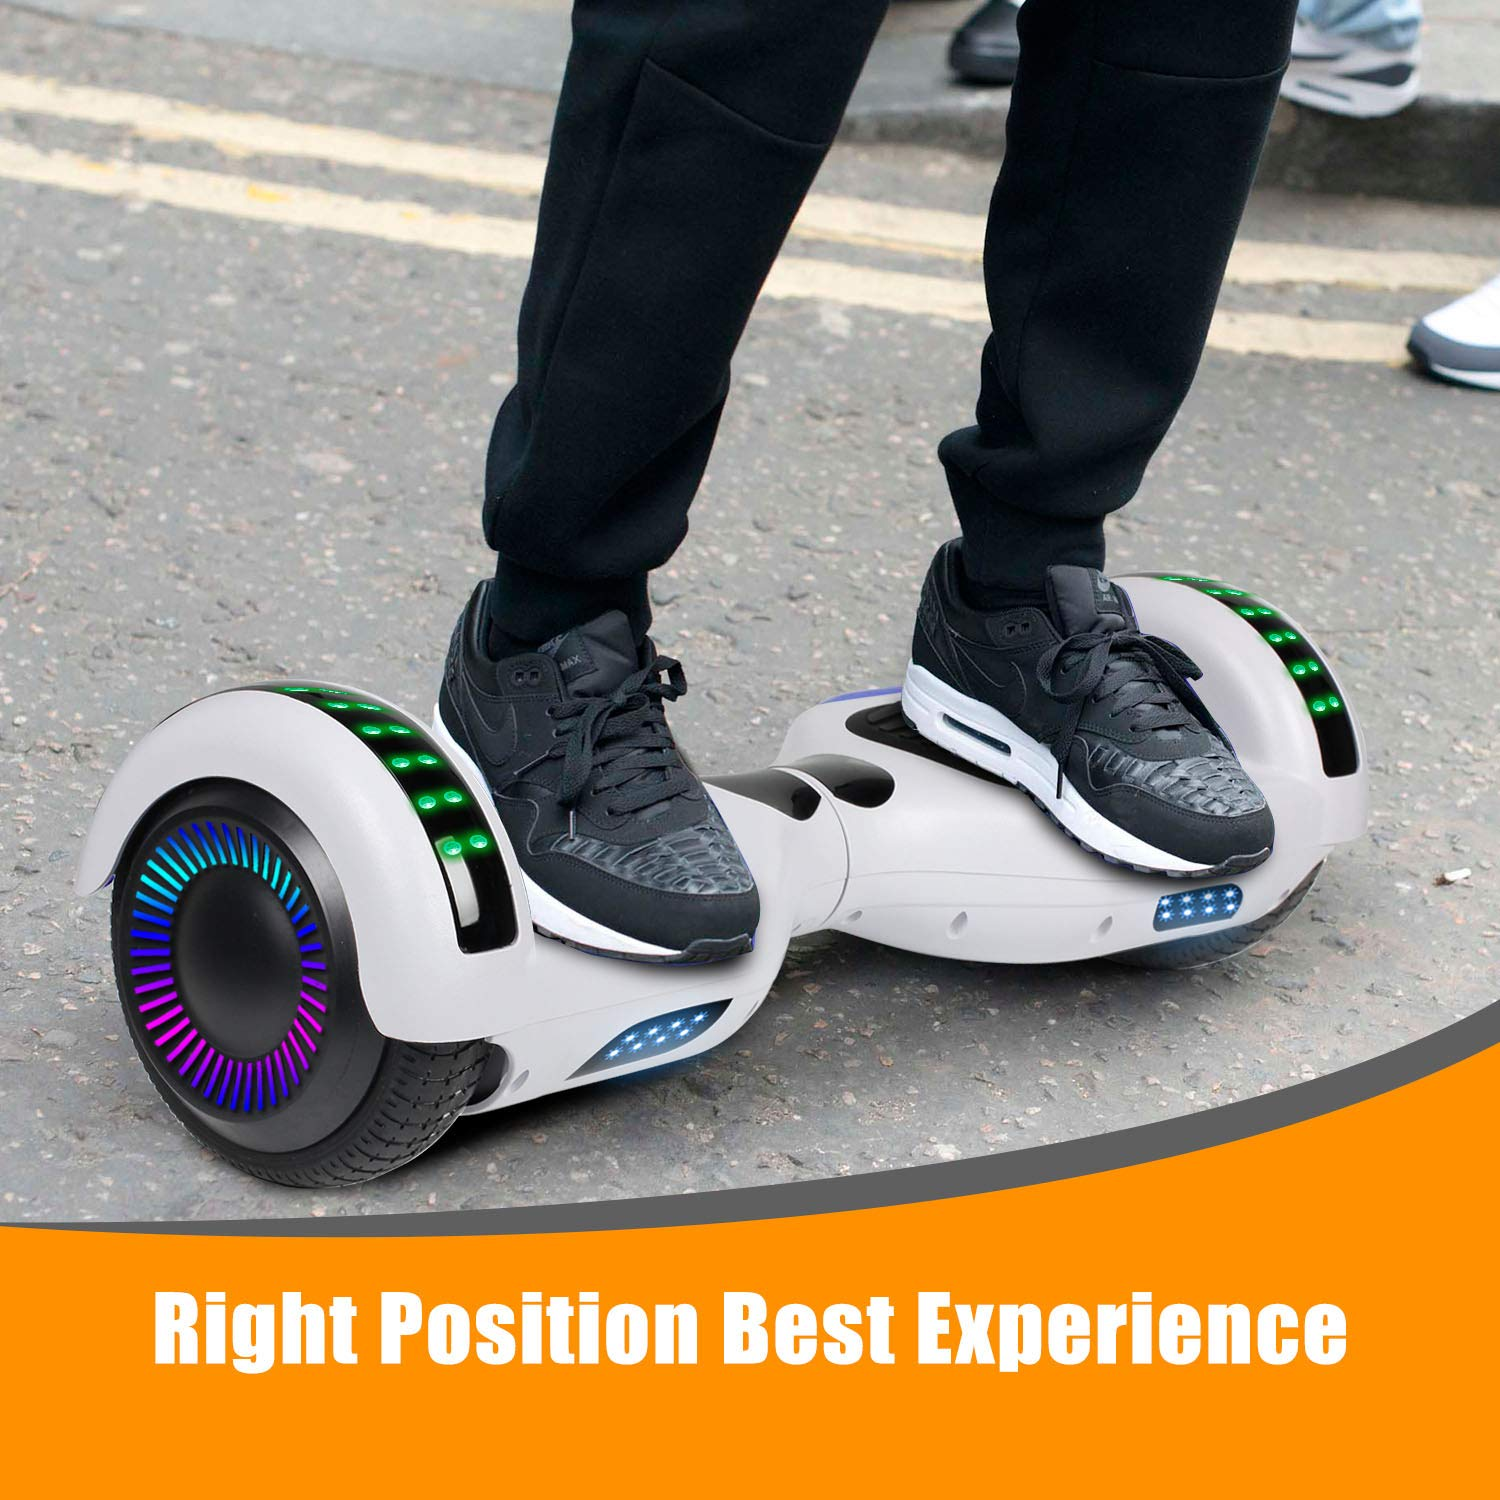 """SWEETBUY Hoverboard UL 2272 Certified 6.5"""" Two-Wheel Bluetooth Self Balancing Electric Scooter with LED Light Flash Lights Wheels White(Free Carry Bag) by SWEETBUY (Image #7)"""